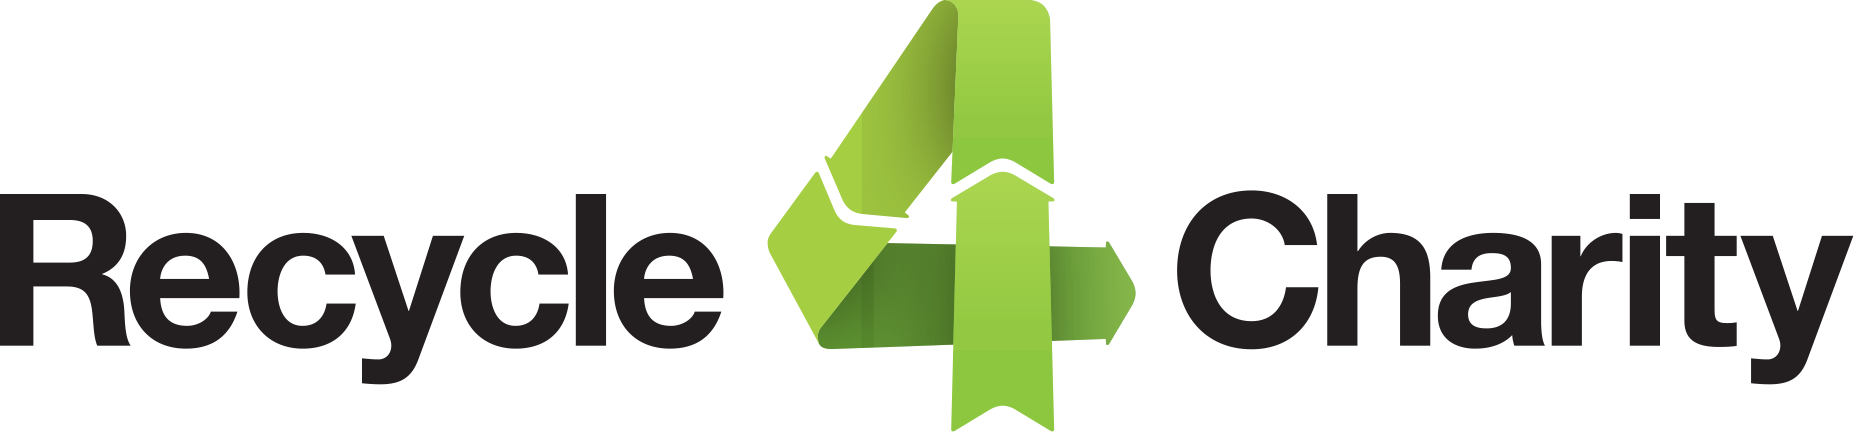 Recycle4Charity2.png